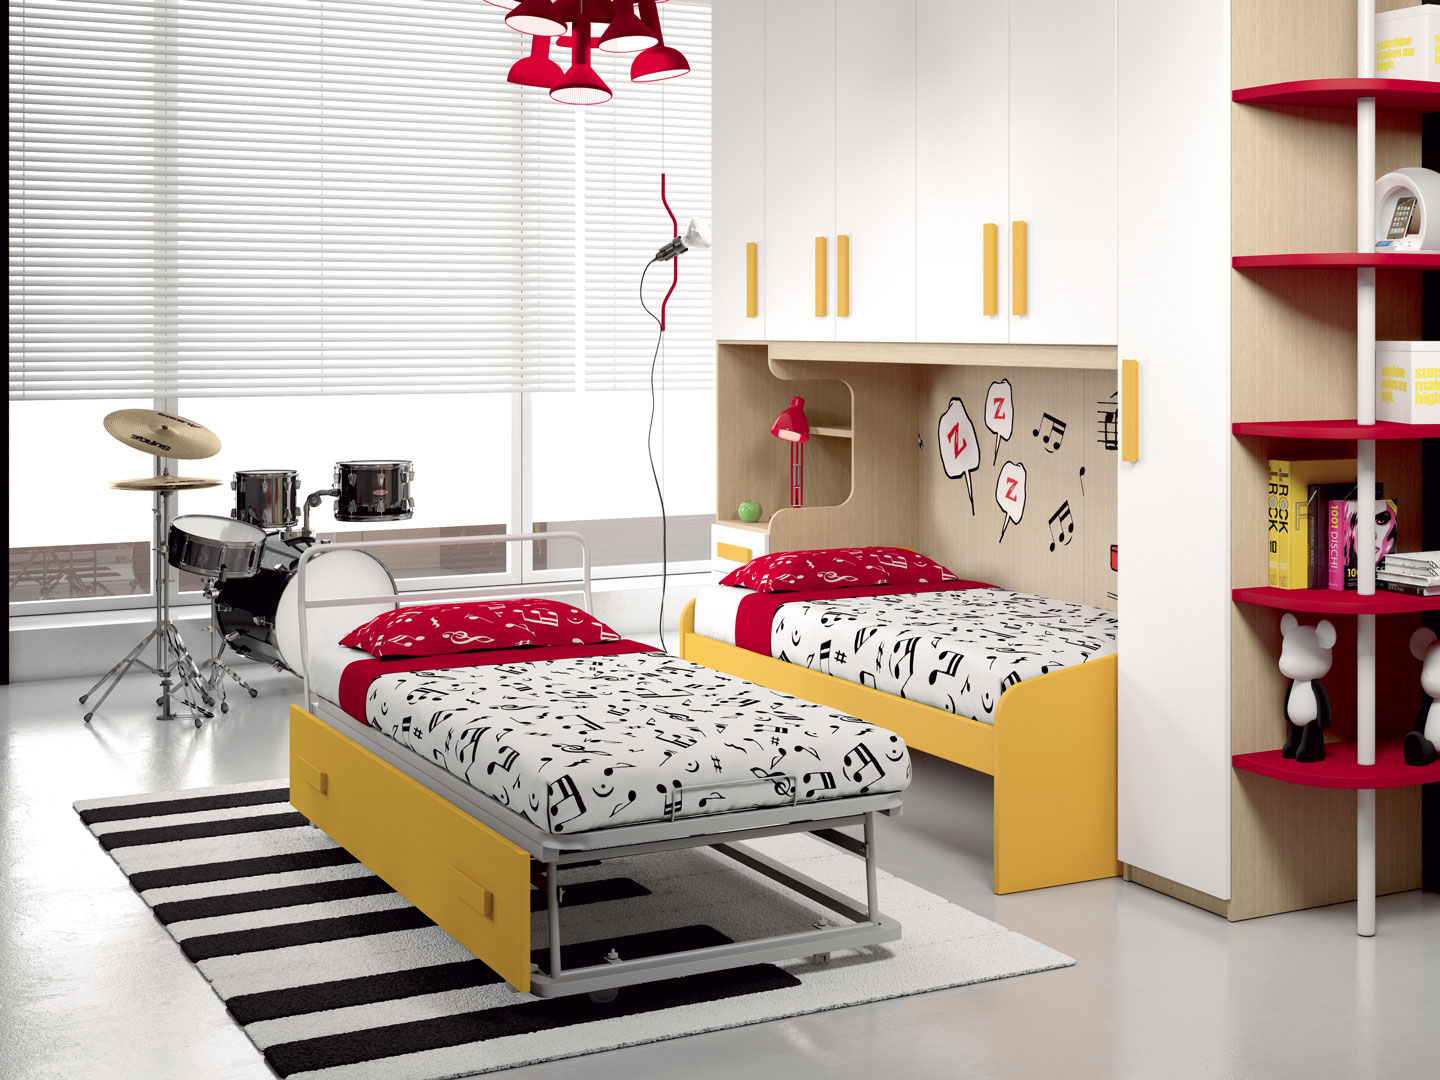 Camerette made in italy ima mobili composizione 13 newformsdesign camerette newformsdesign - Mobili made in italy ...